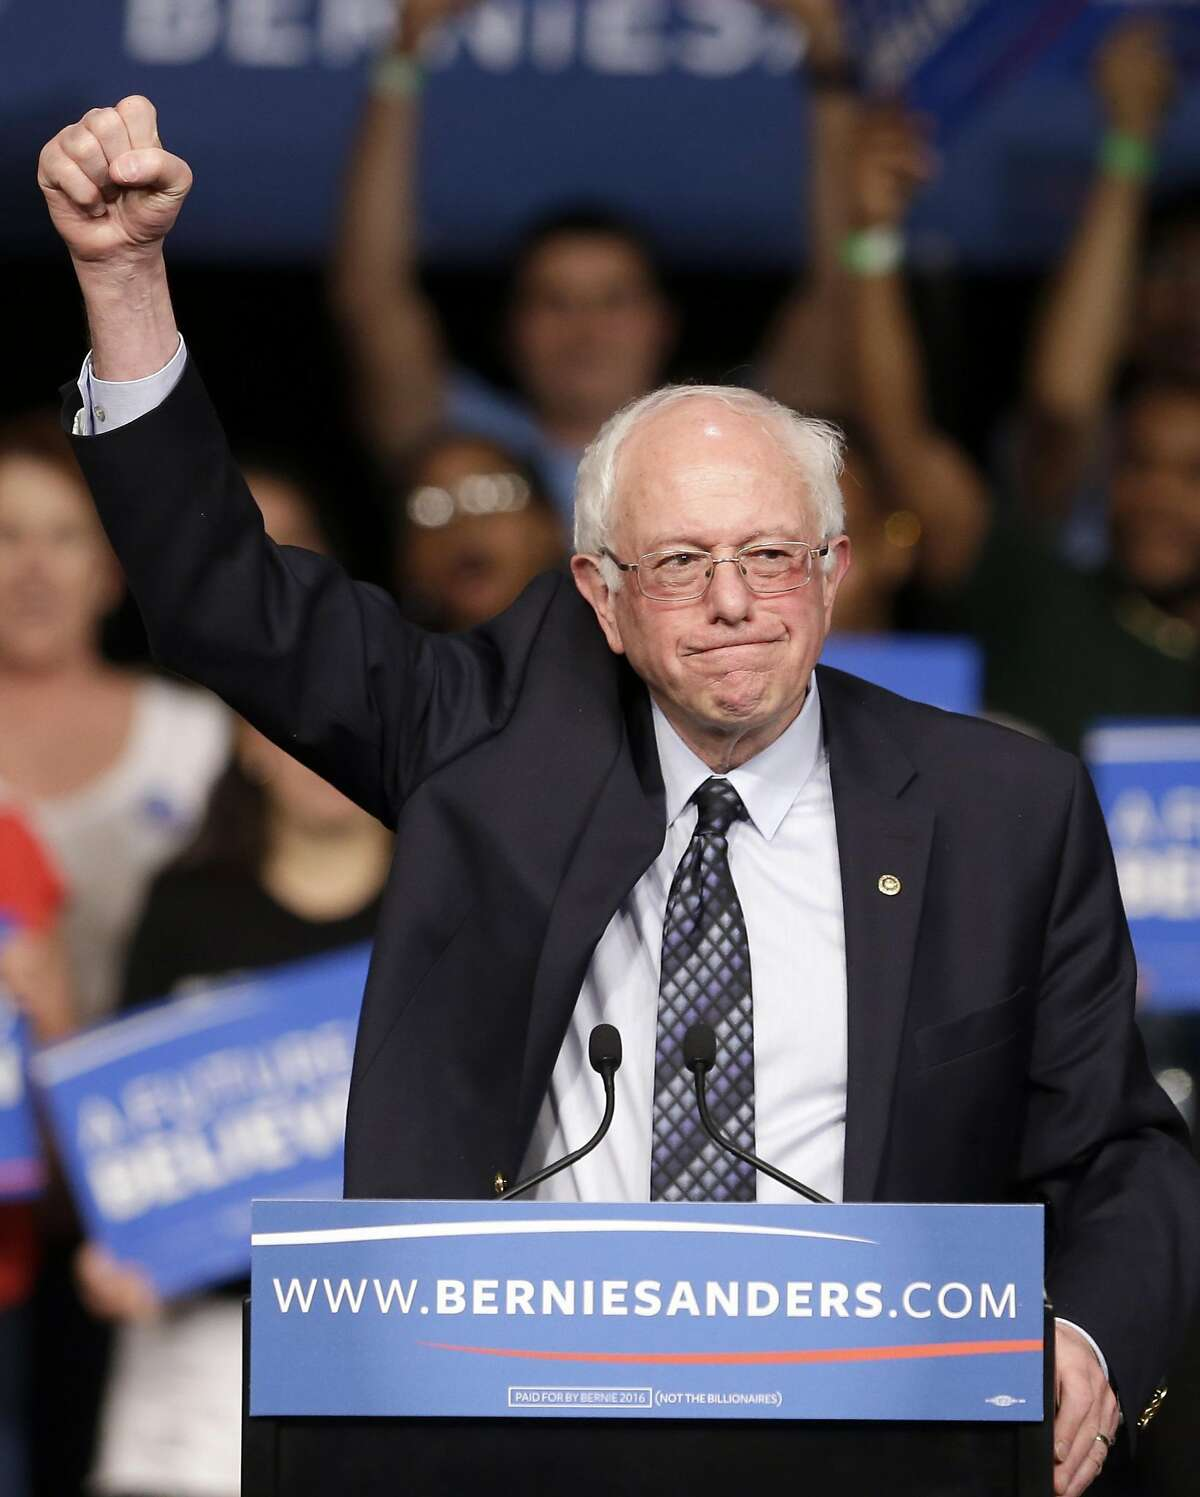 Democratic presidential candidate, Sen. Bernie Sanders, I-Vt. acknowledges his supporters at his arrival at a campaign rally, Tuesday, March 8, 2016, in Miami. (AP Photo/Alan Diaz)